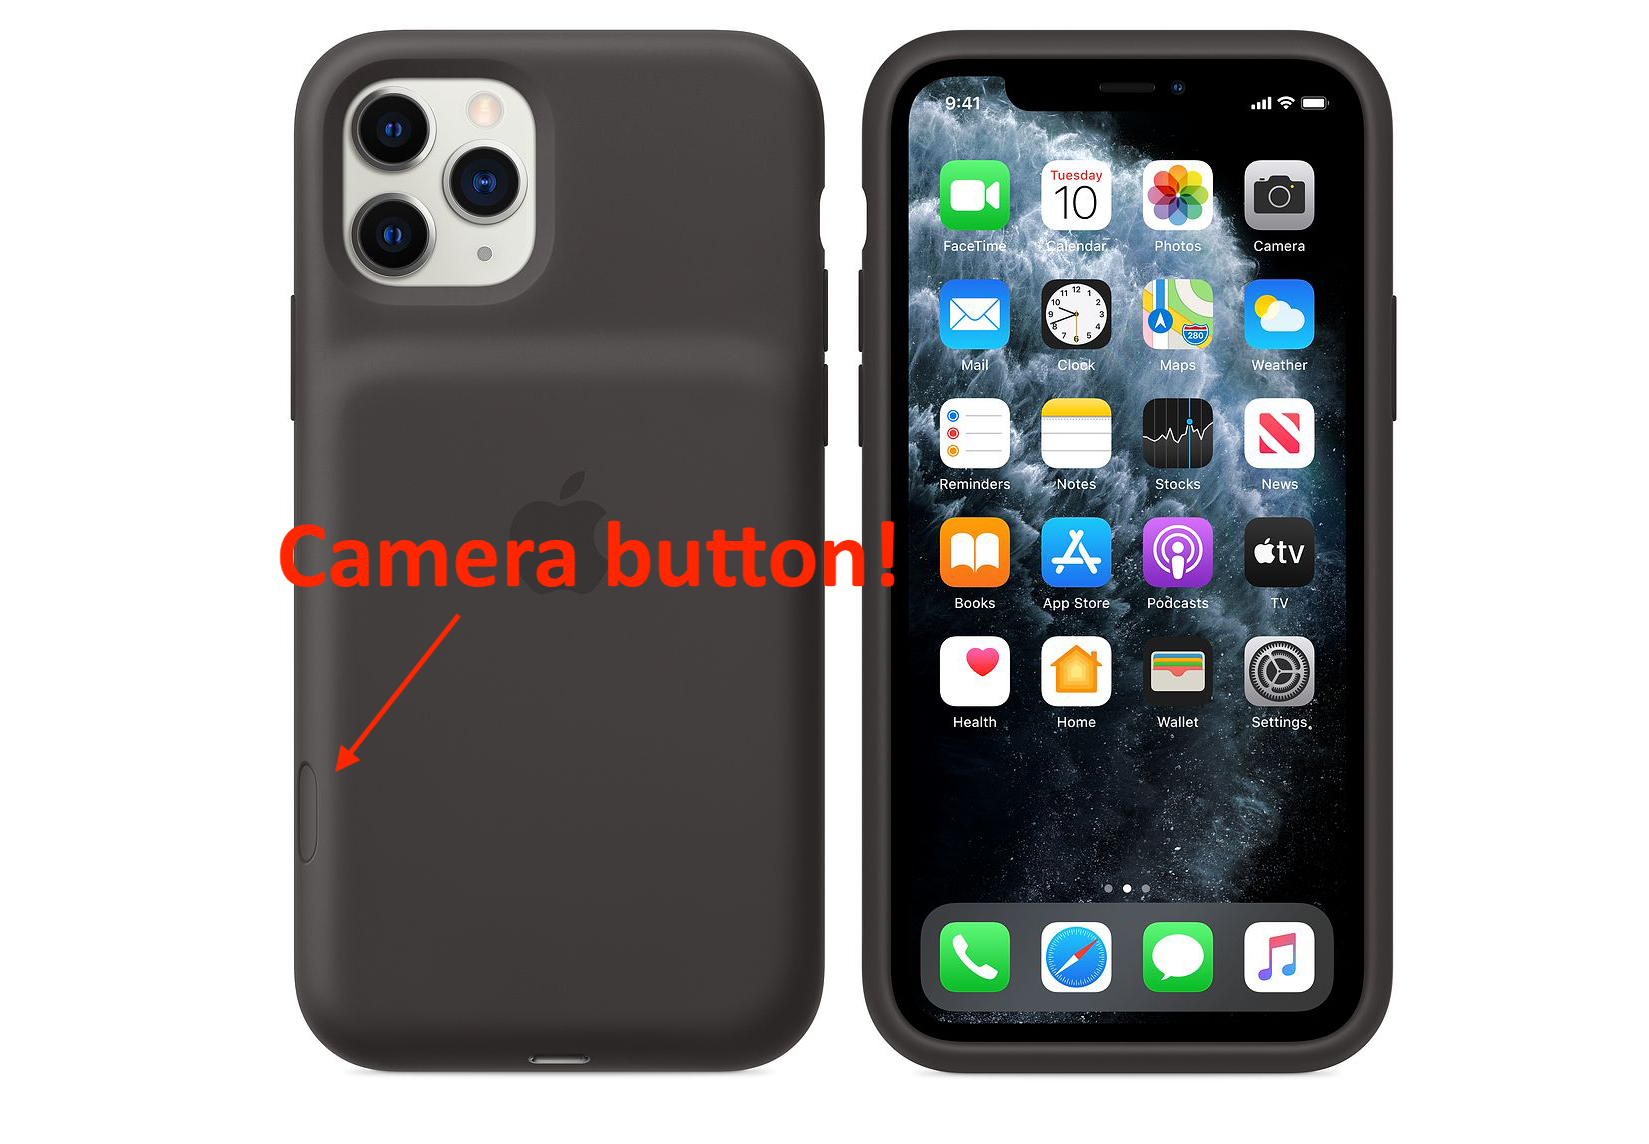 Apple's iPhone 11 Pro battery case sports a new camera button